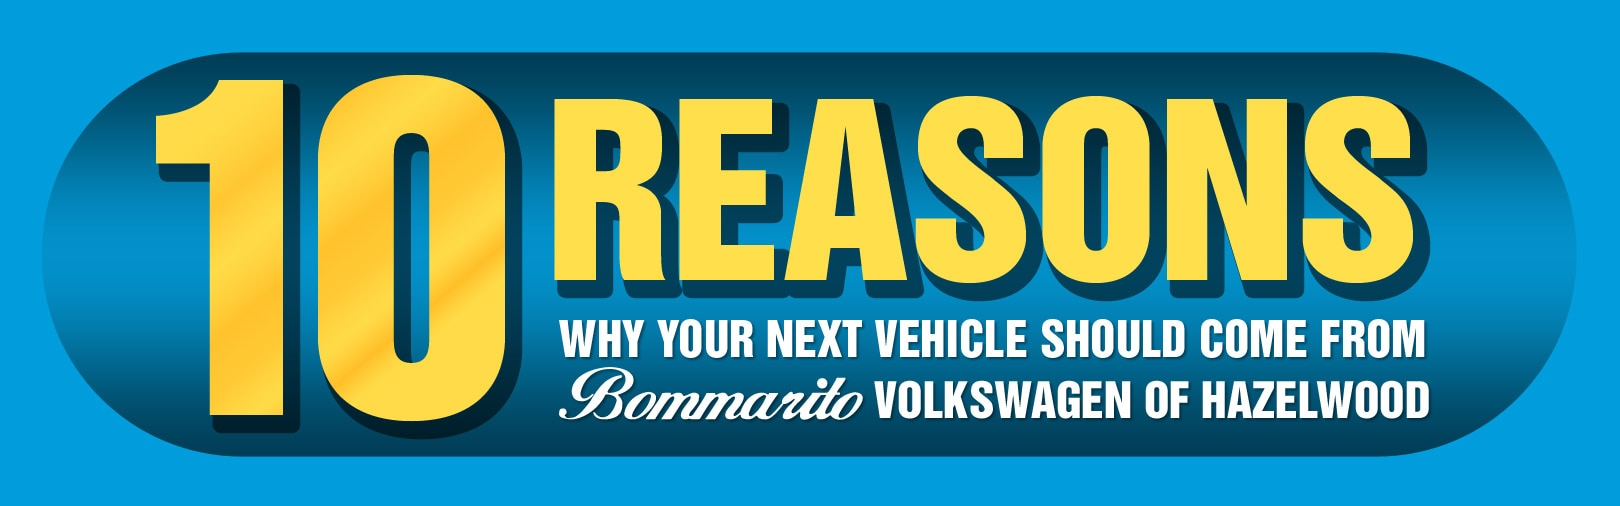 10 Reasons to Buy a Car from Bommarito VW of Hazelwood